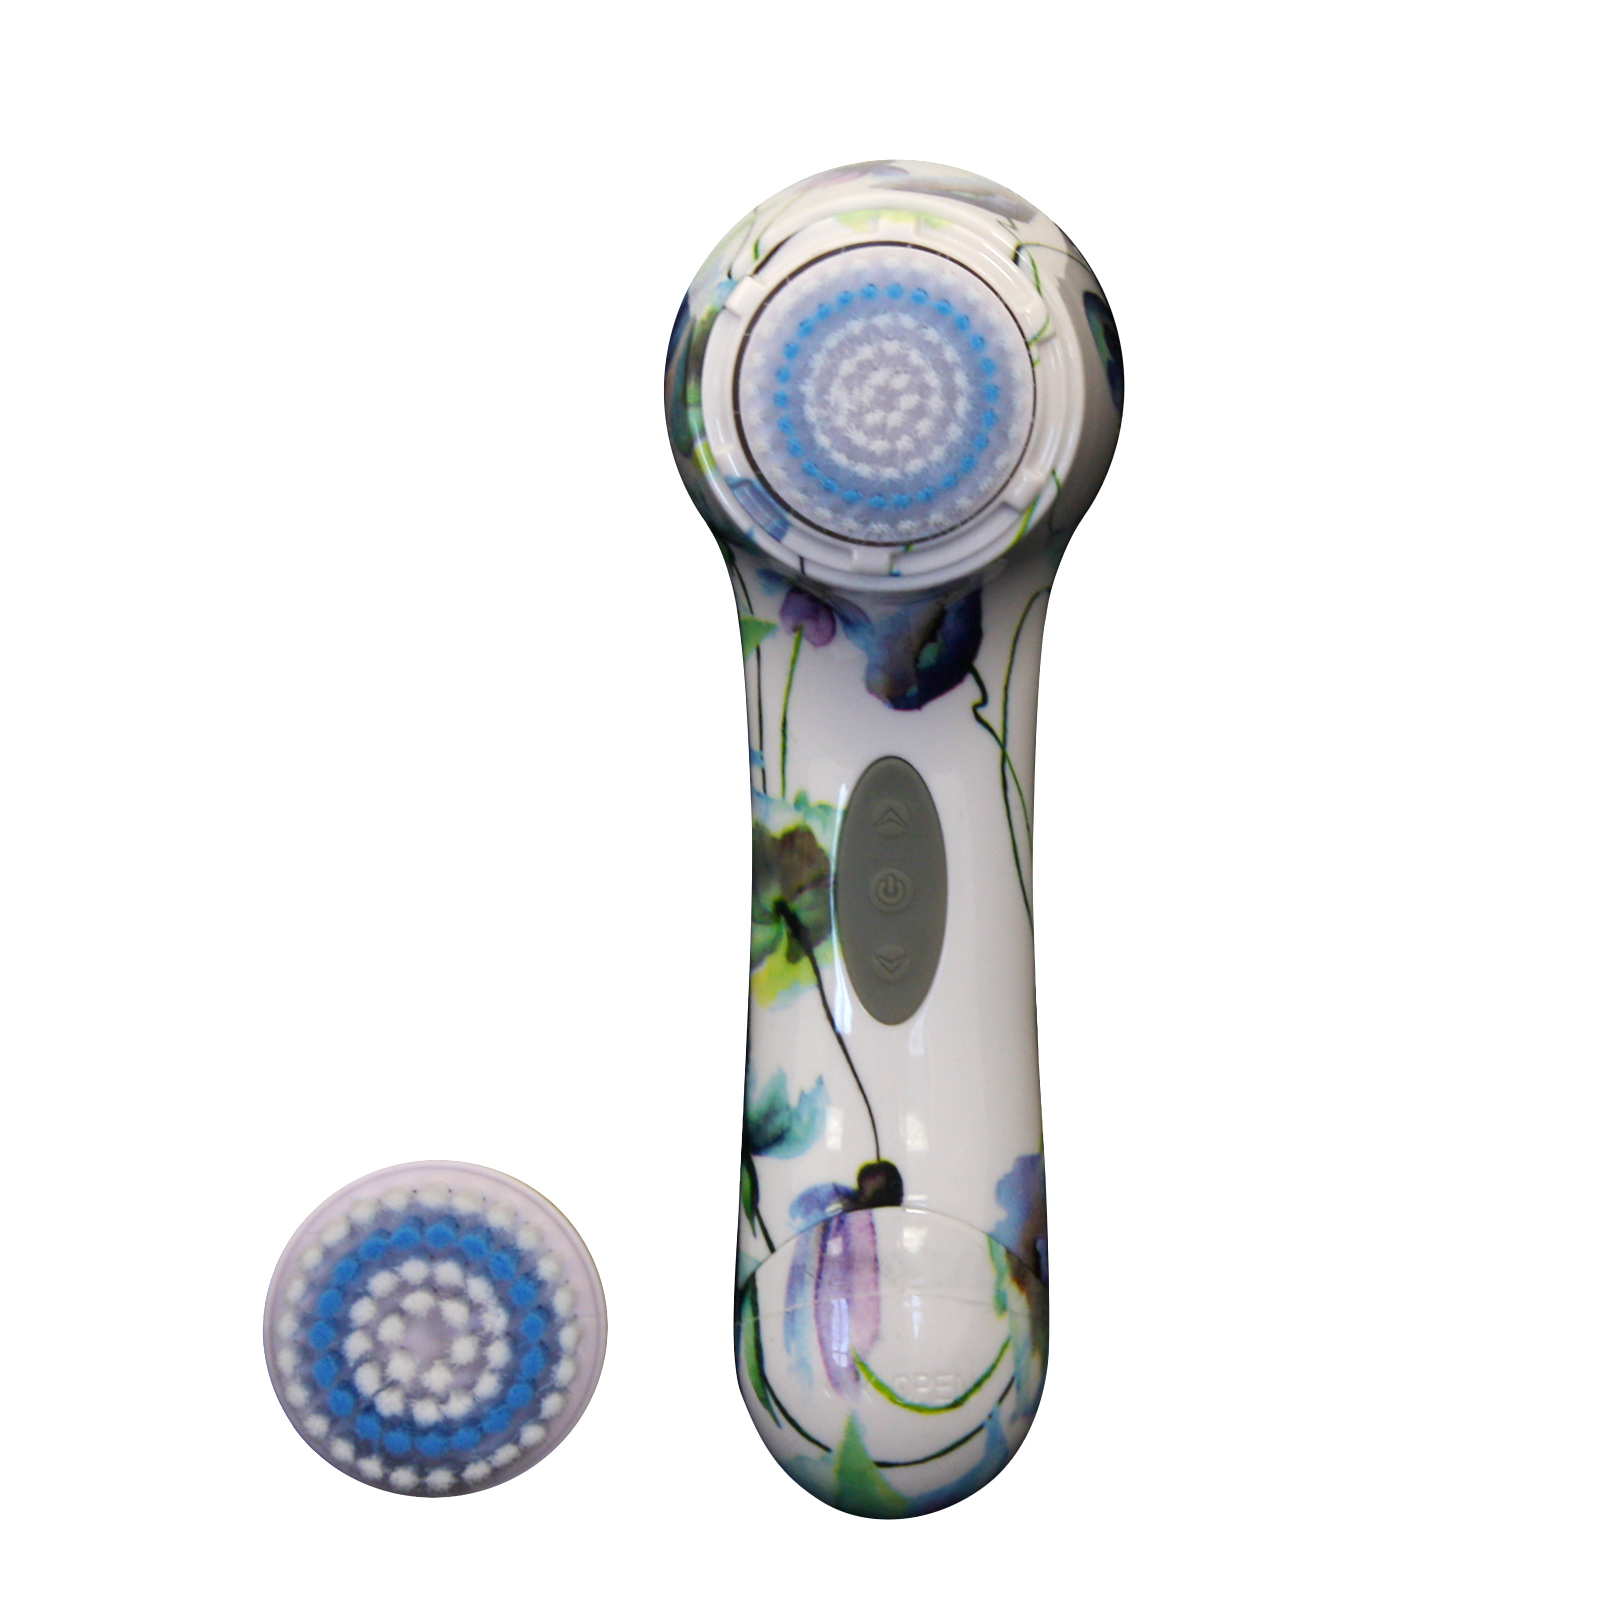 Vivitar Flower Pattern Electronic Facial Brush